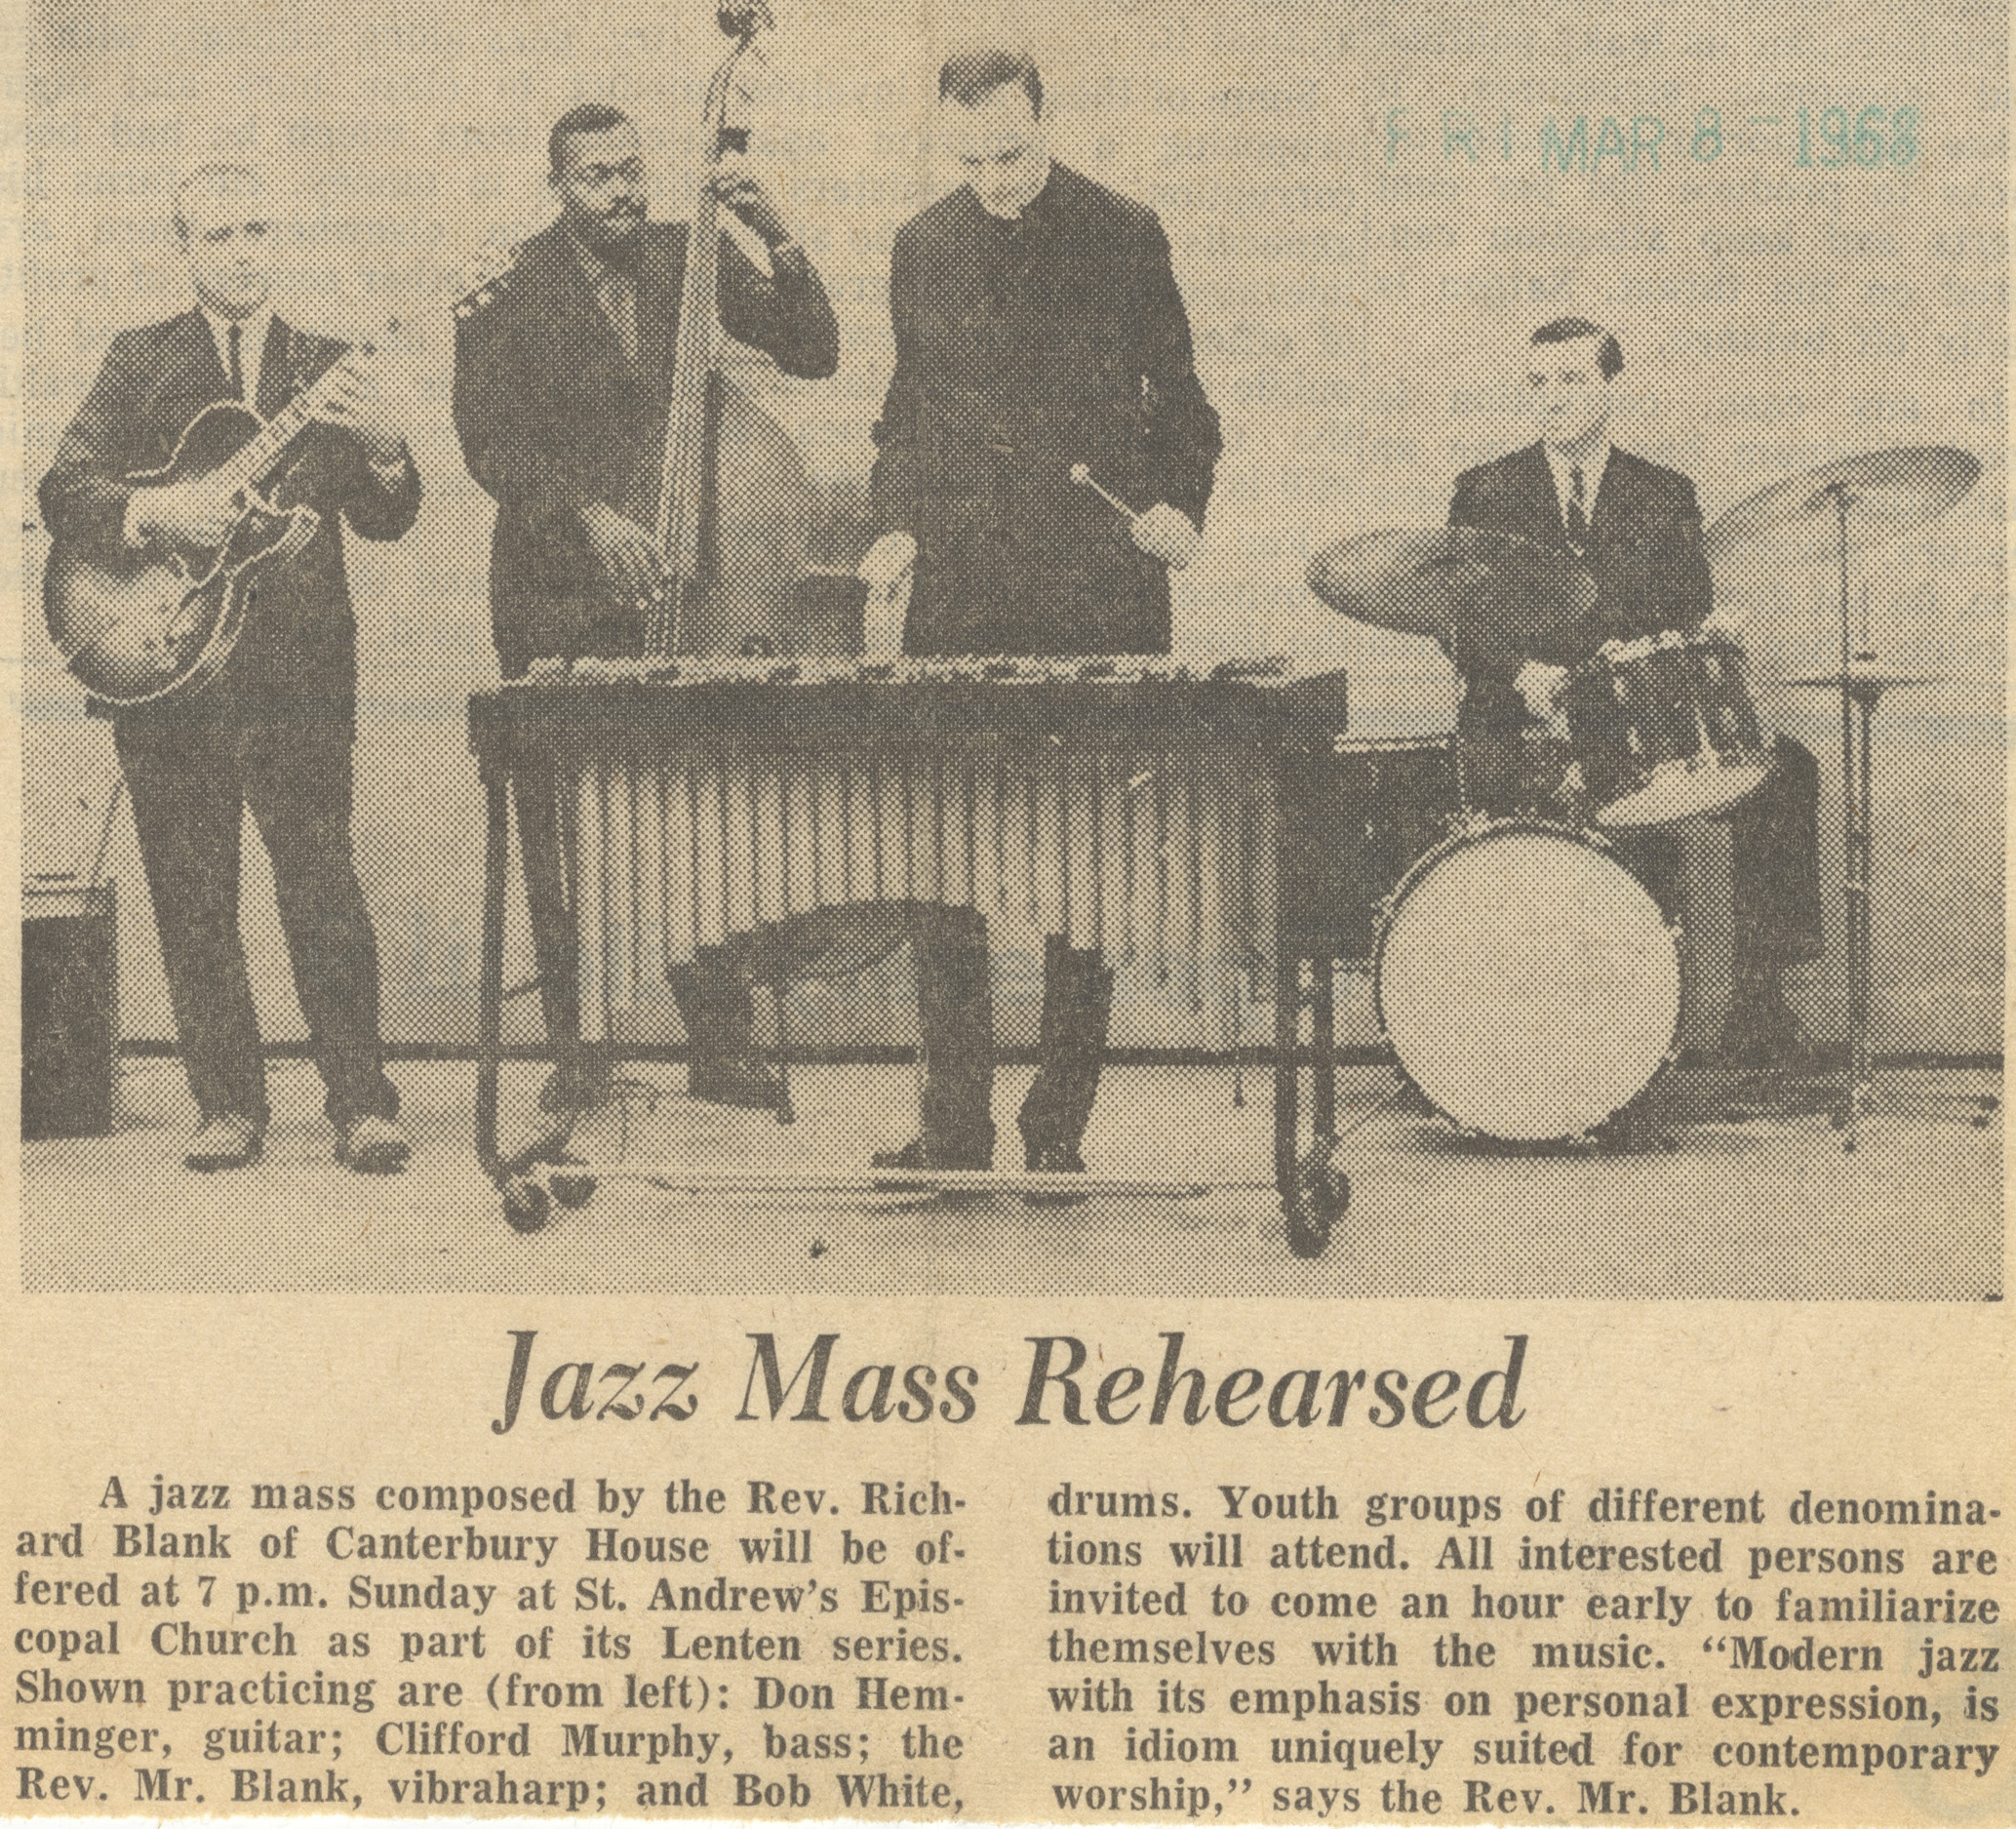 Jazz Mass Rehearsed image